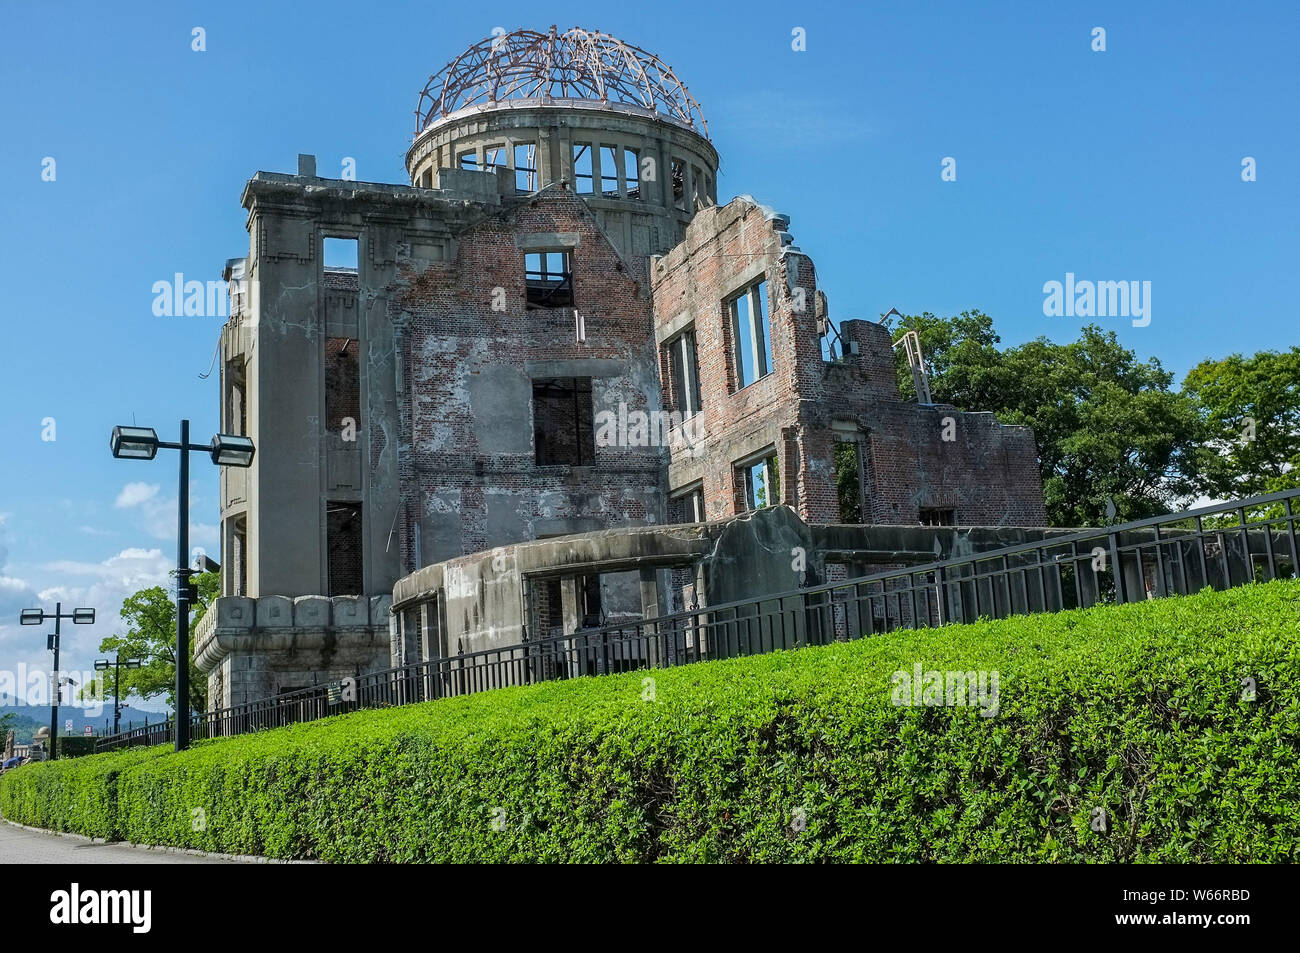 The Atomic Bomb Dome where At 8:15am on 6th August 1945, the first atomic bomb in human history was dropped on Hiroshima, Japan. Stock Photo